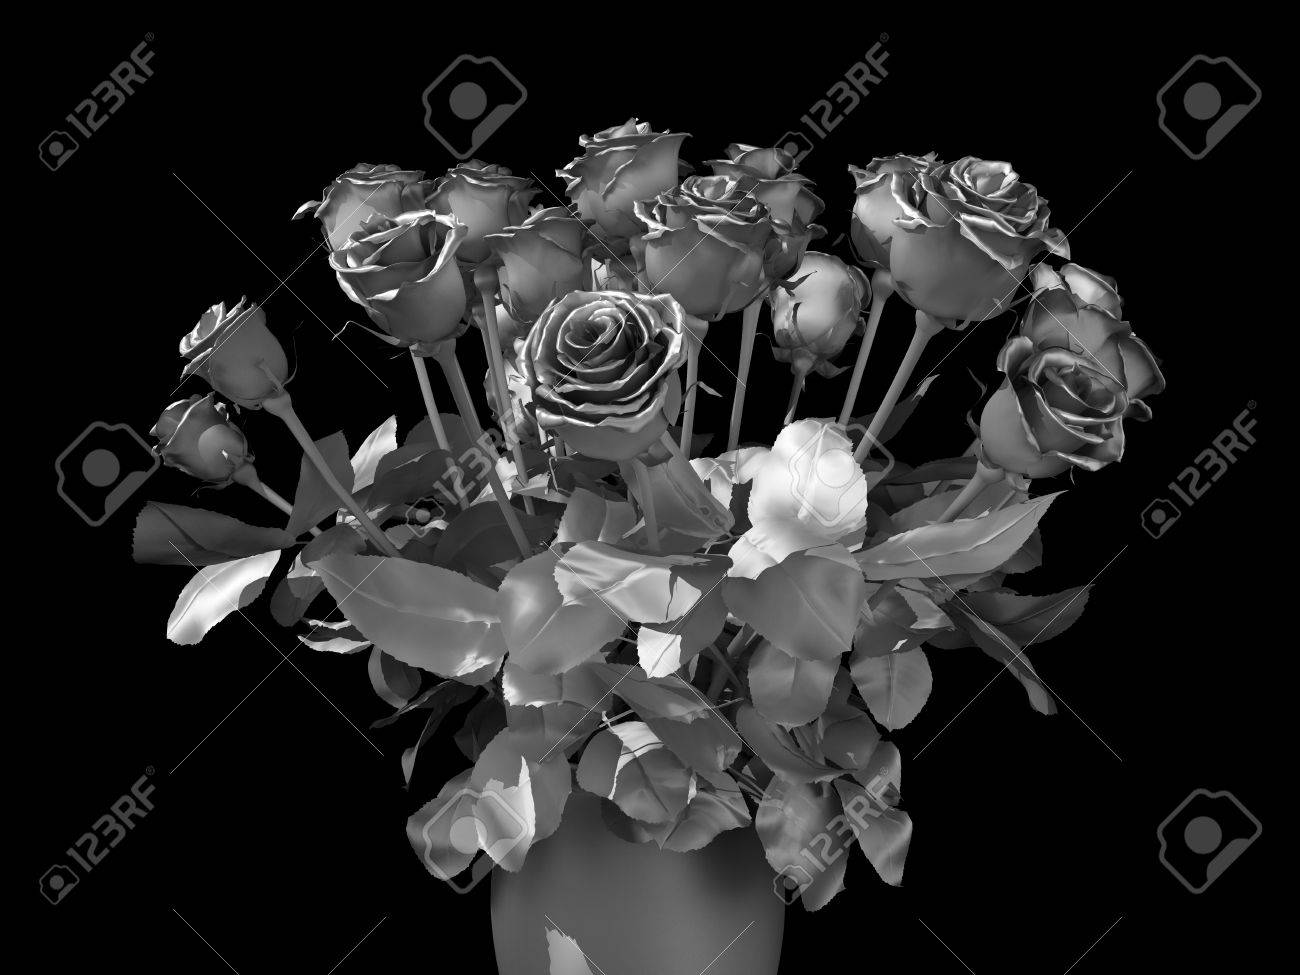 Silver Roses Bouquet On A Black Background Stock Photo